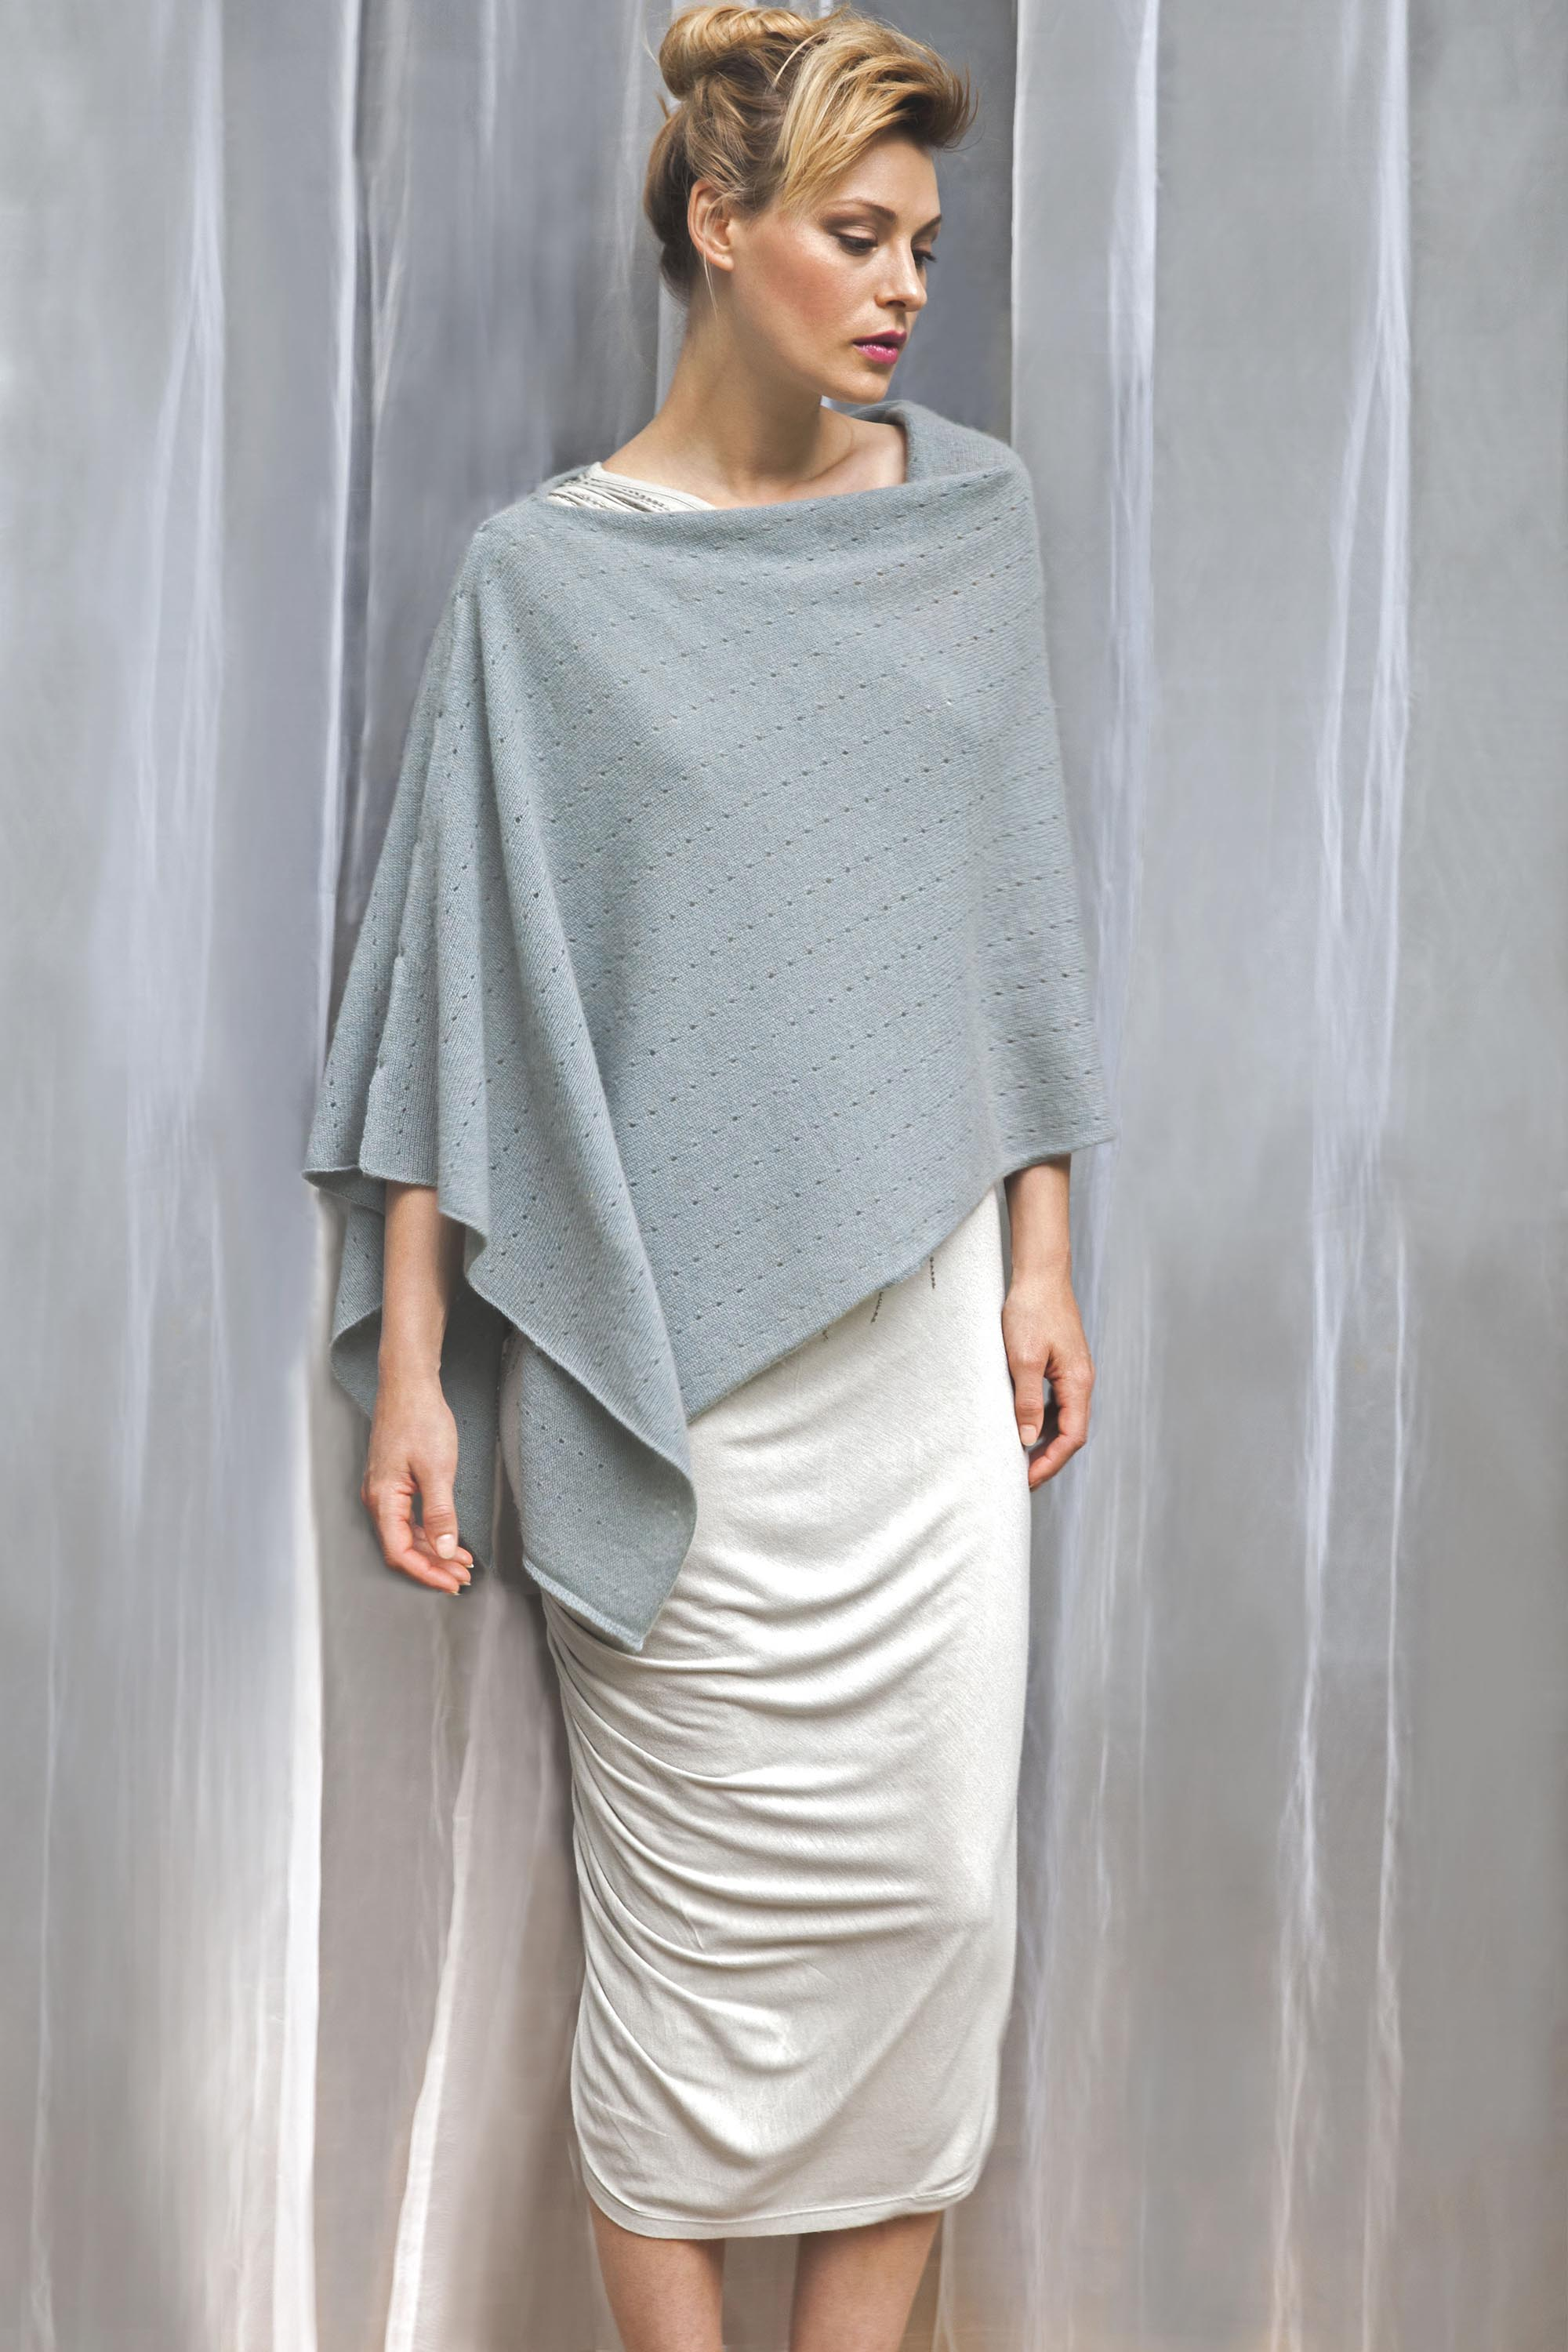 Winter white cashmere poncho | Multiway lacy poncho with buttons